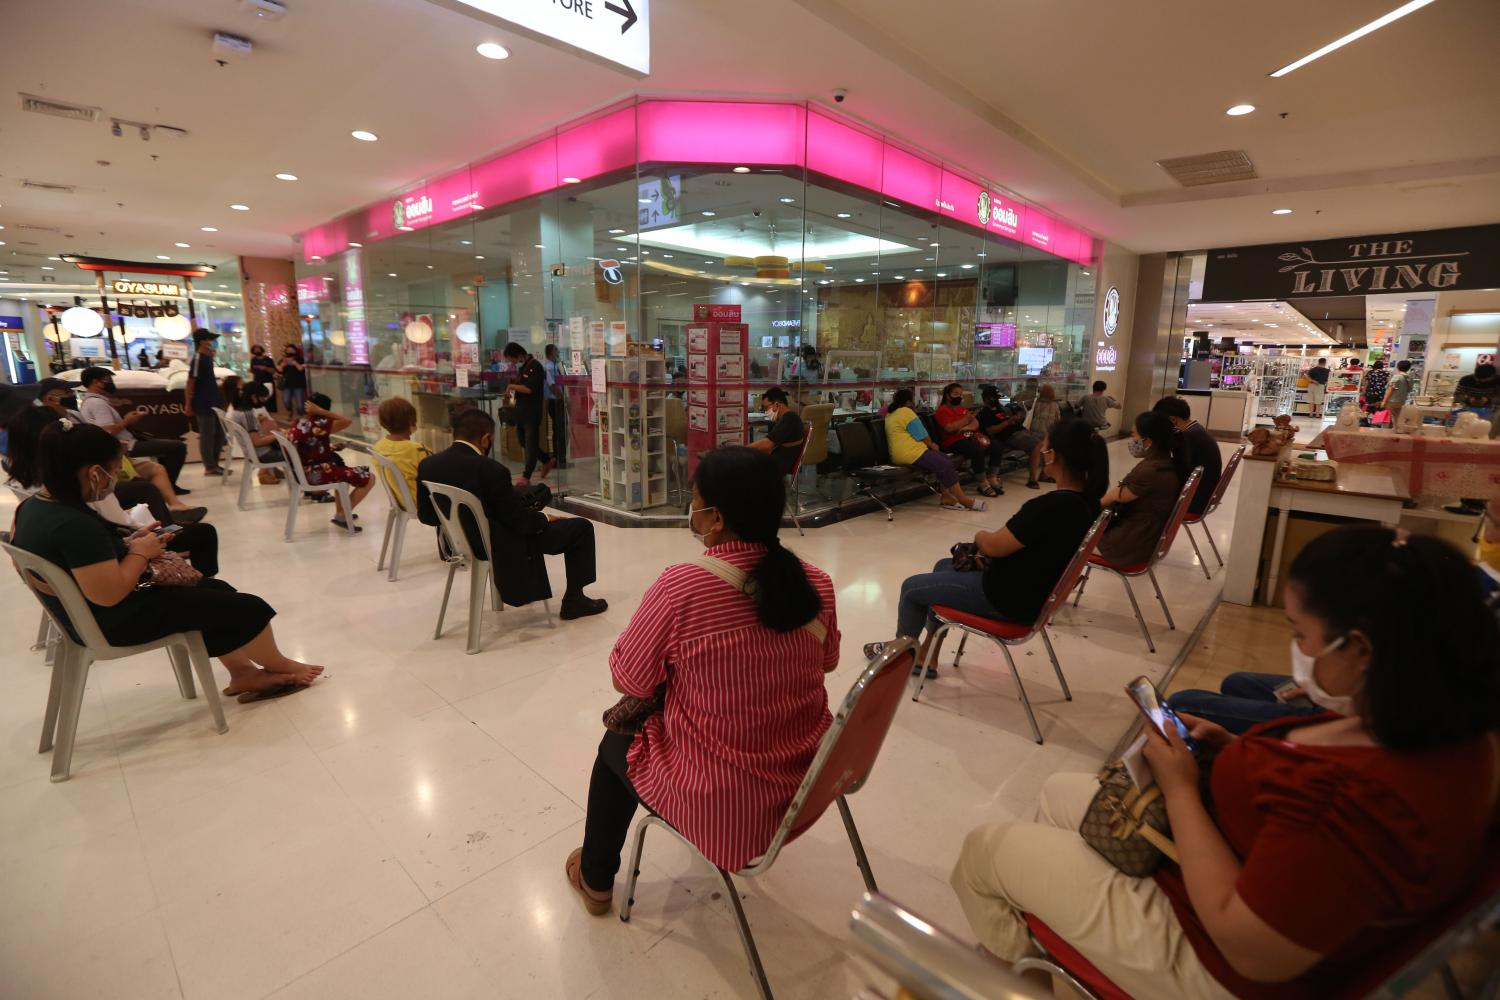 People follow social distancing while queuing at a Government Savings Bank branch in a shopping mall.(Photo: Varuth Hirunyatheb)